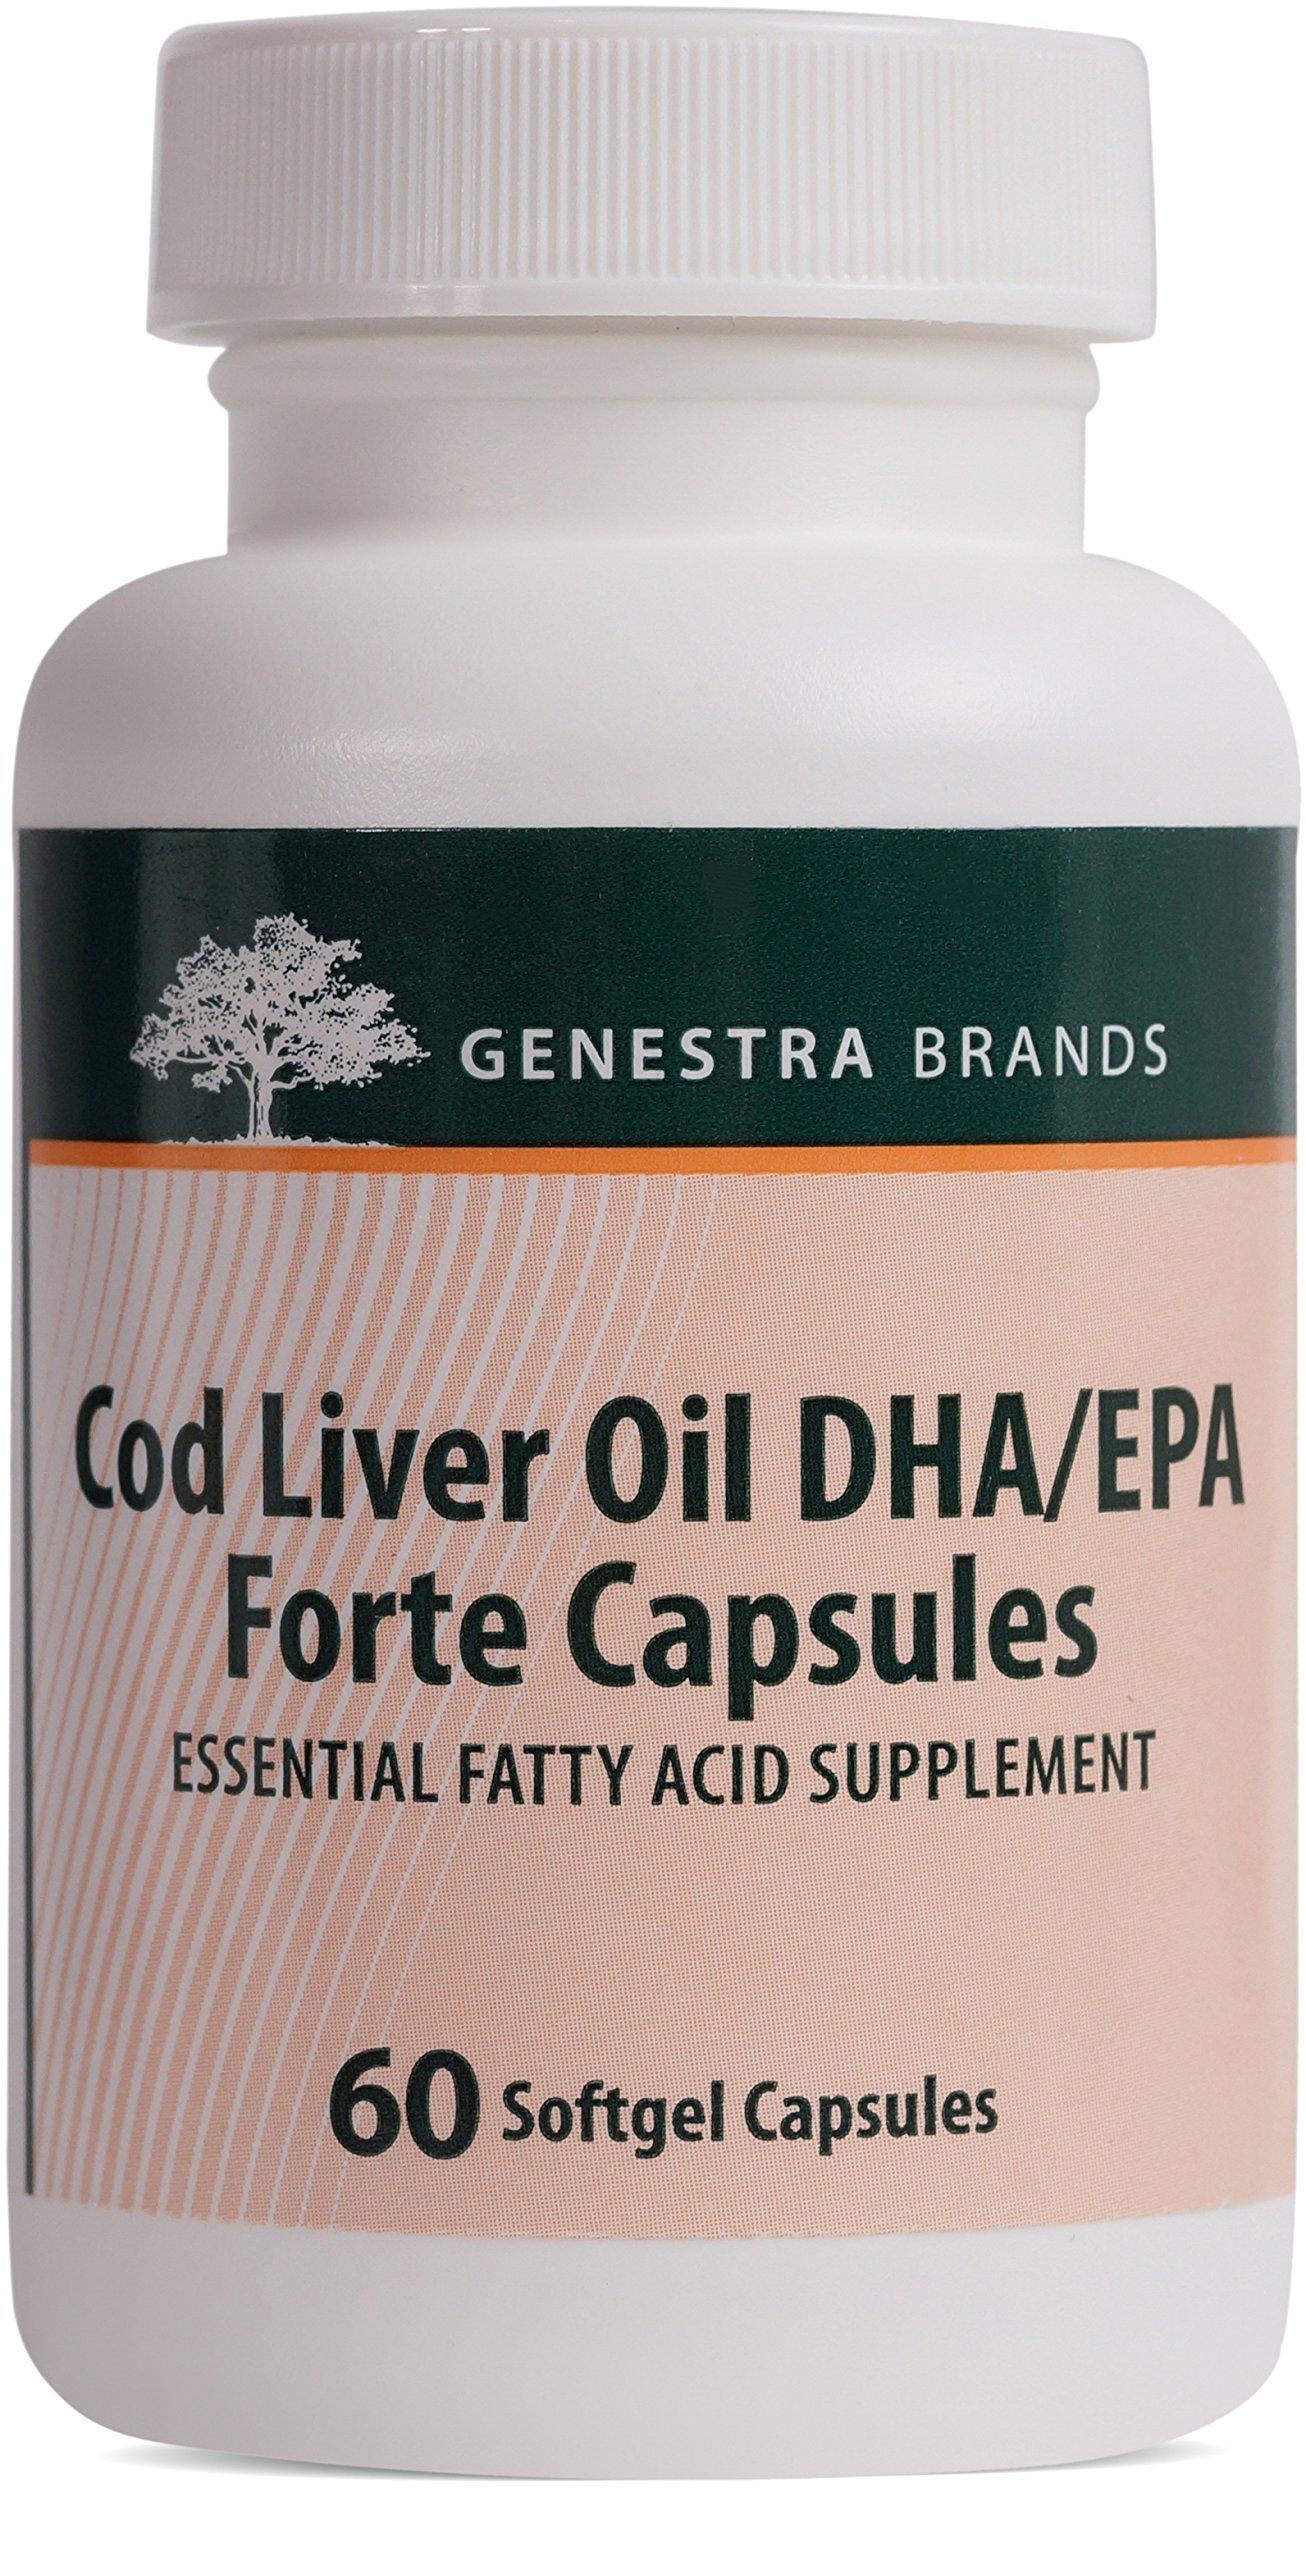 Genestra Brands - Cod Liver Oil DHA/EPA Forte Capsules - Blend of DHA, EPA, and Vitamins A and D - 60 Softgel Capsules by Genestra Brands (Image #1)